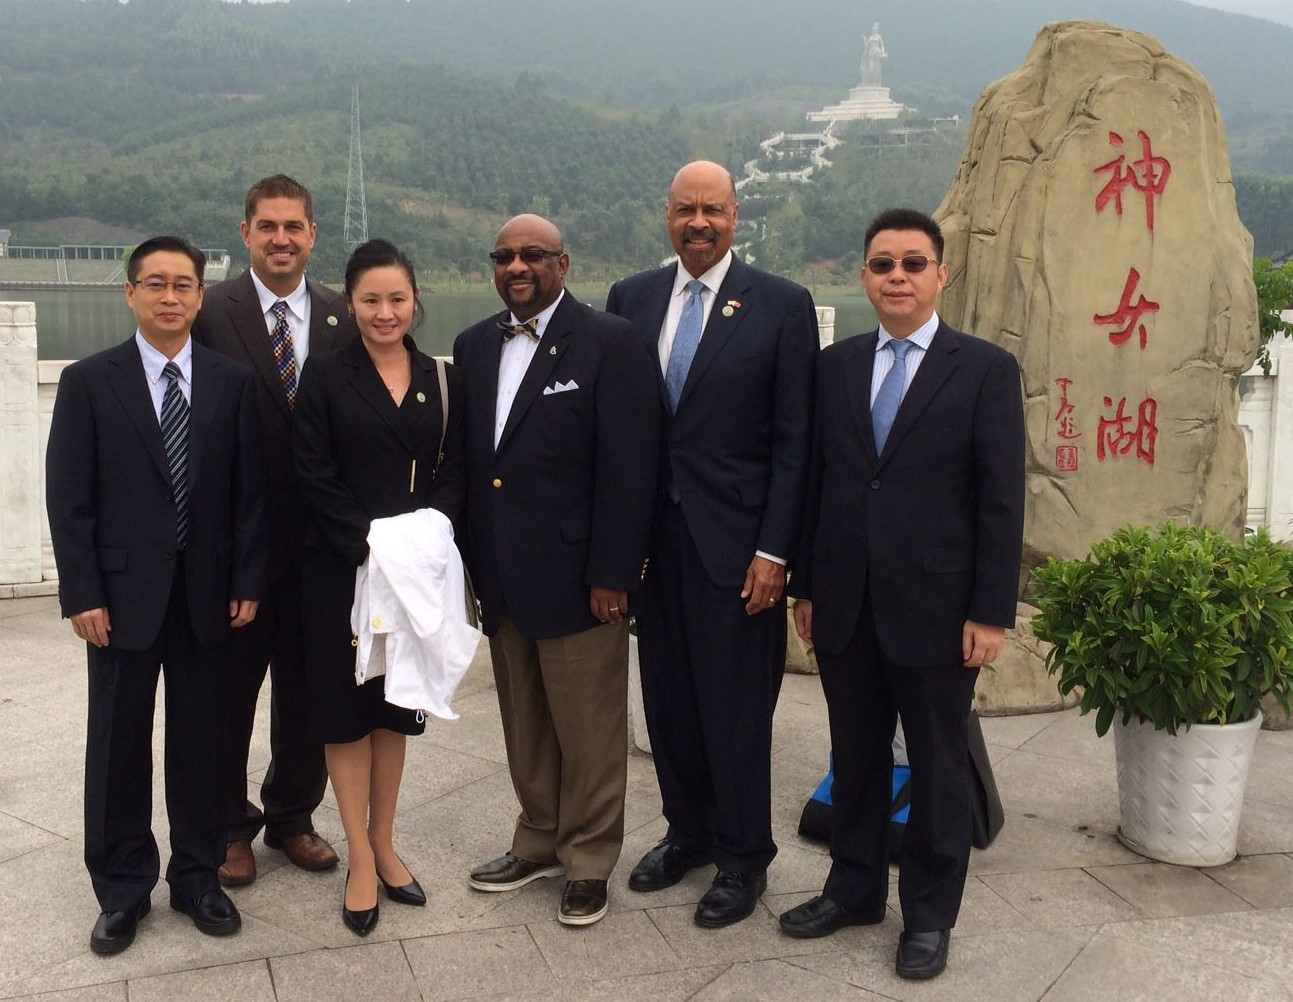 Chester County to Send Largest Delegation Ever to China to Explore Business Opportunities